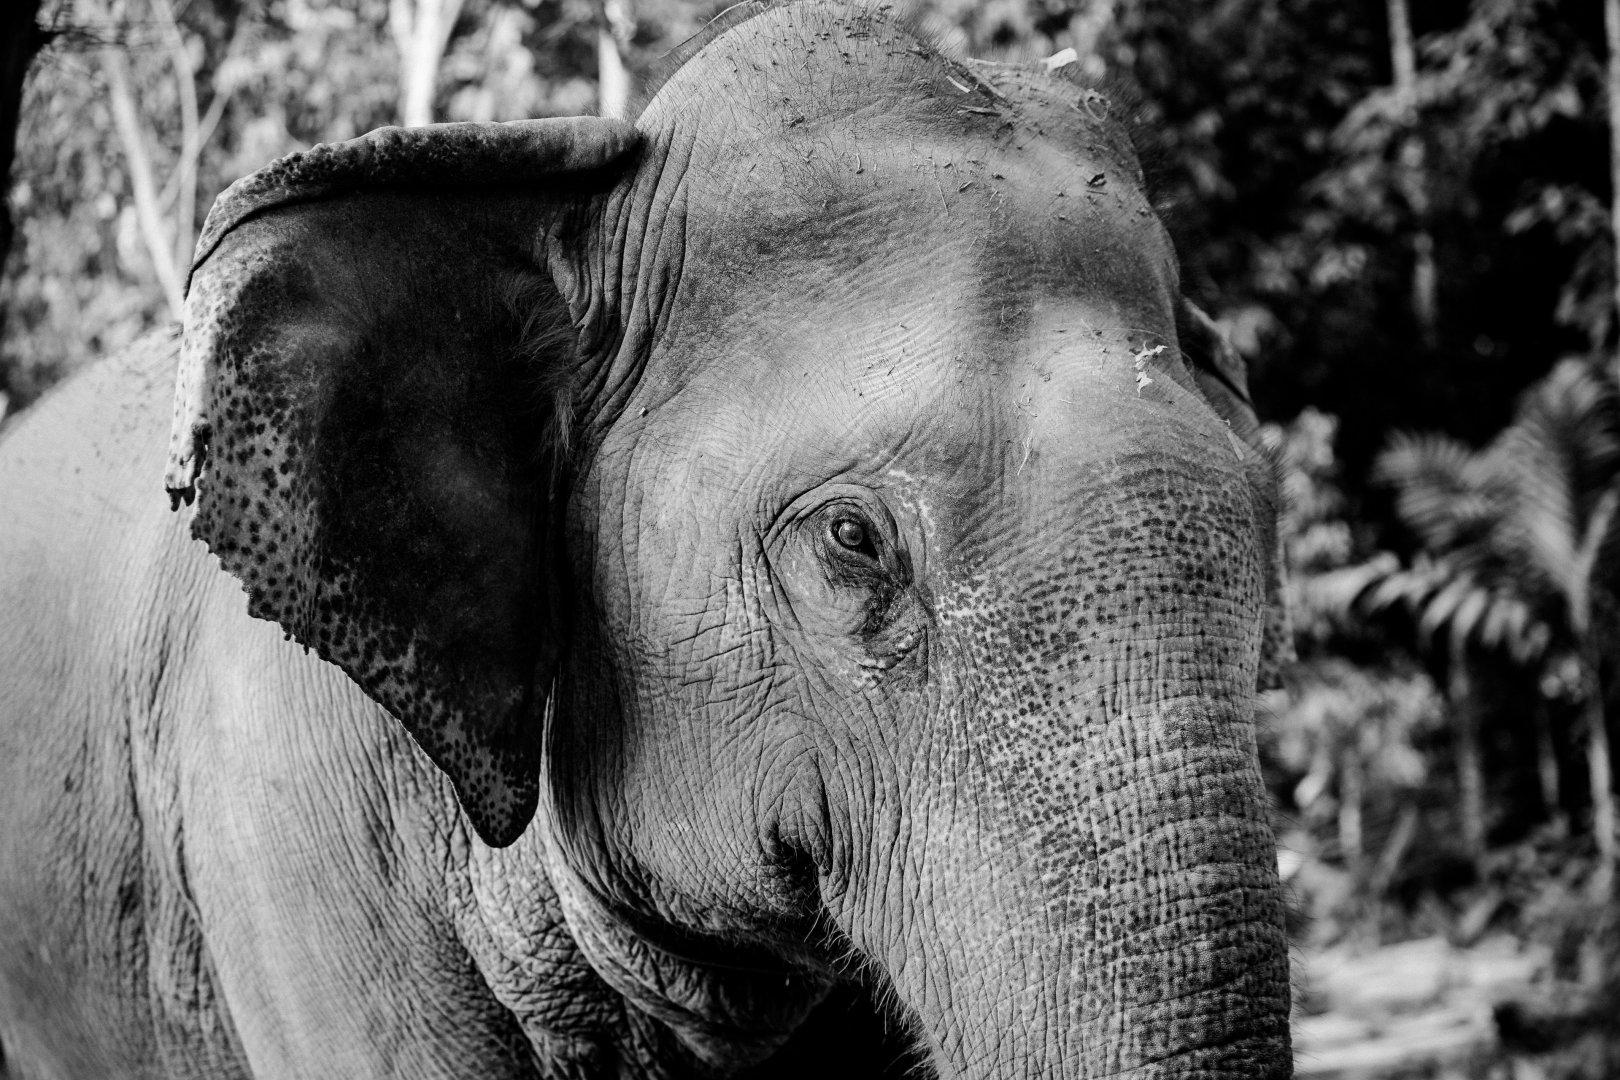 Elephants and Mammoths Indian elephant Black Terrestrial animal Wildlife Black-and-white Snout Skin Eye African elephant Head Close-up Monochrome photography Working animal Monochrome Organ Wrinkle Zoo Photography Ear Tusk Grass Tree Adaptation Stock photography Temple Safari Style